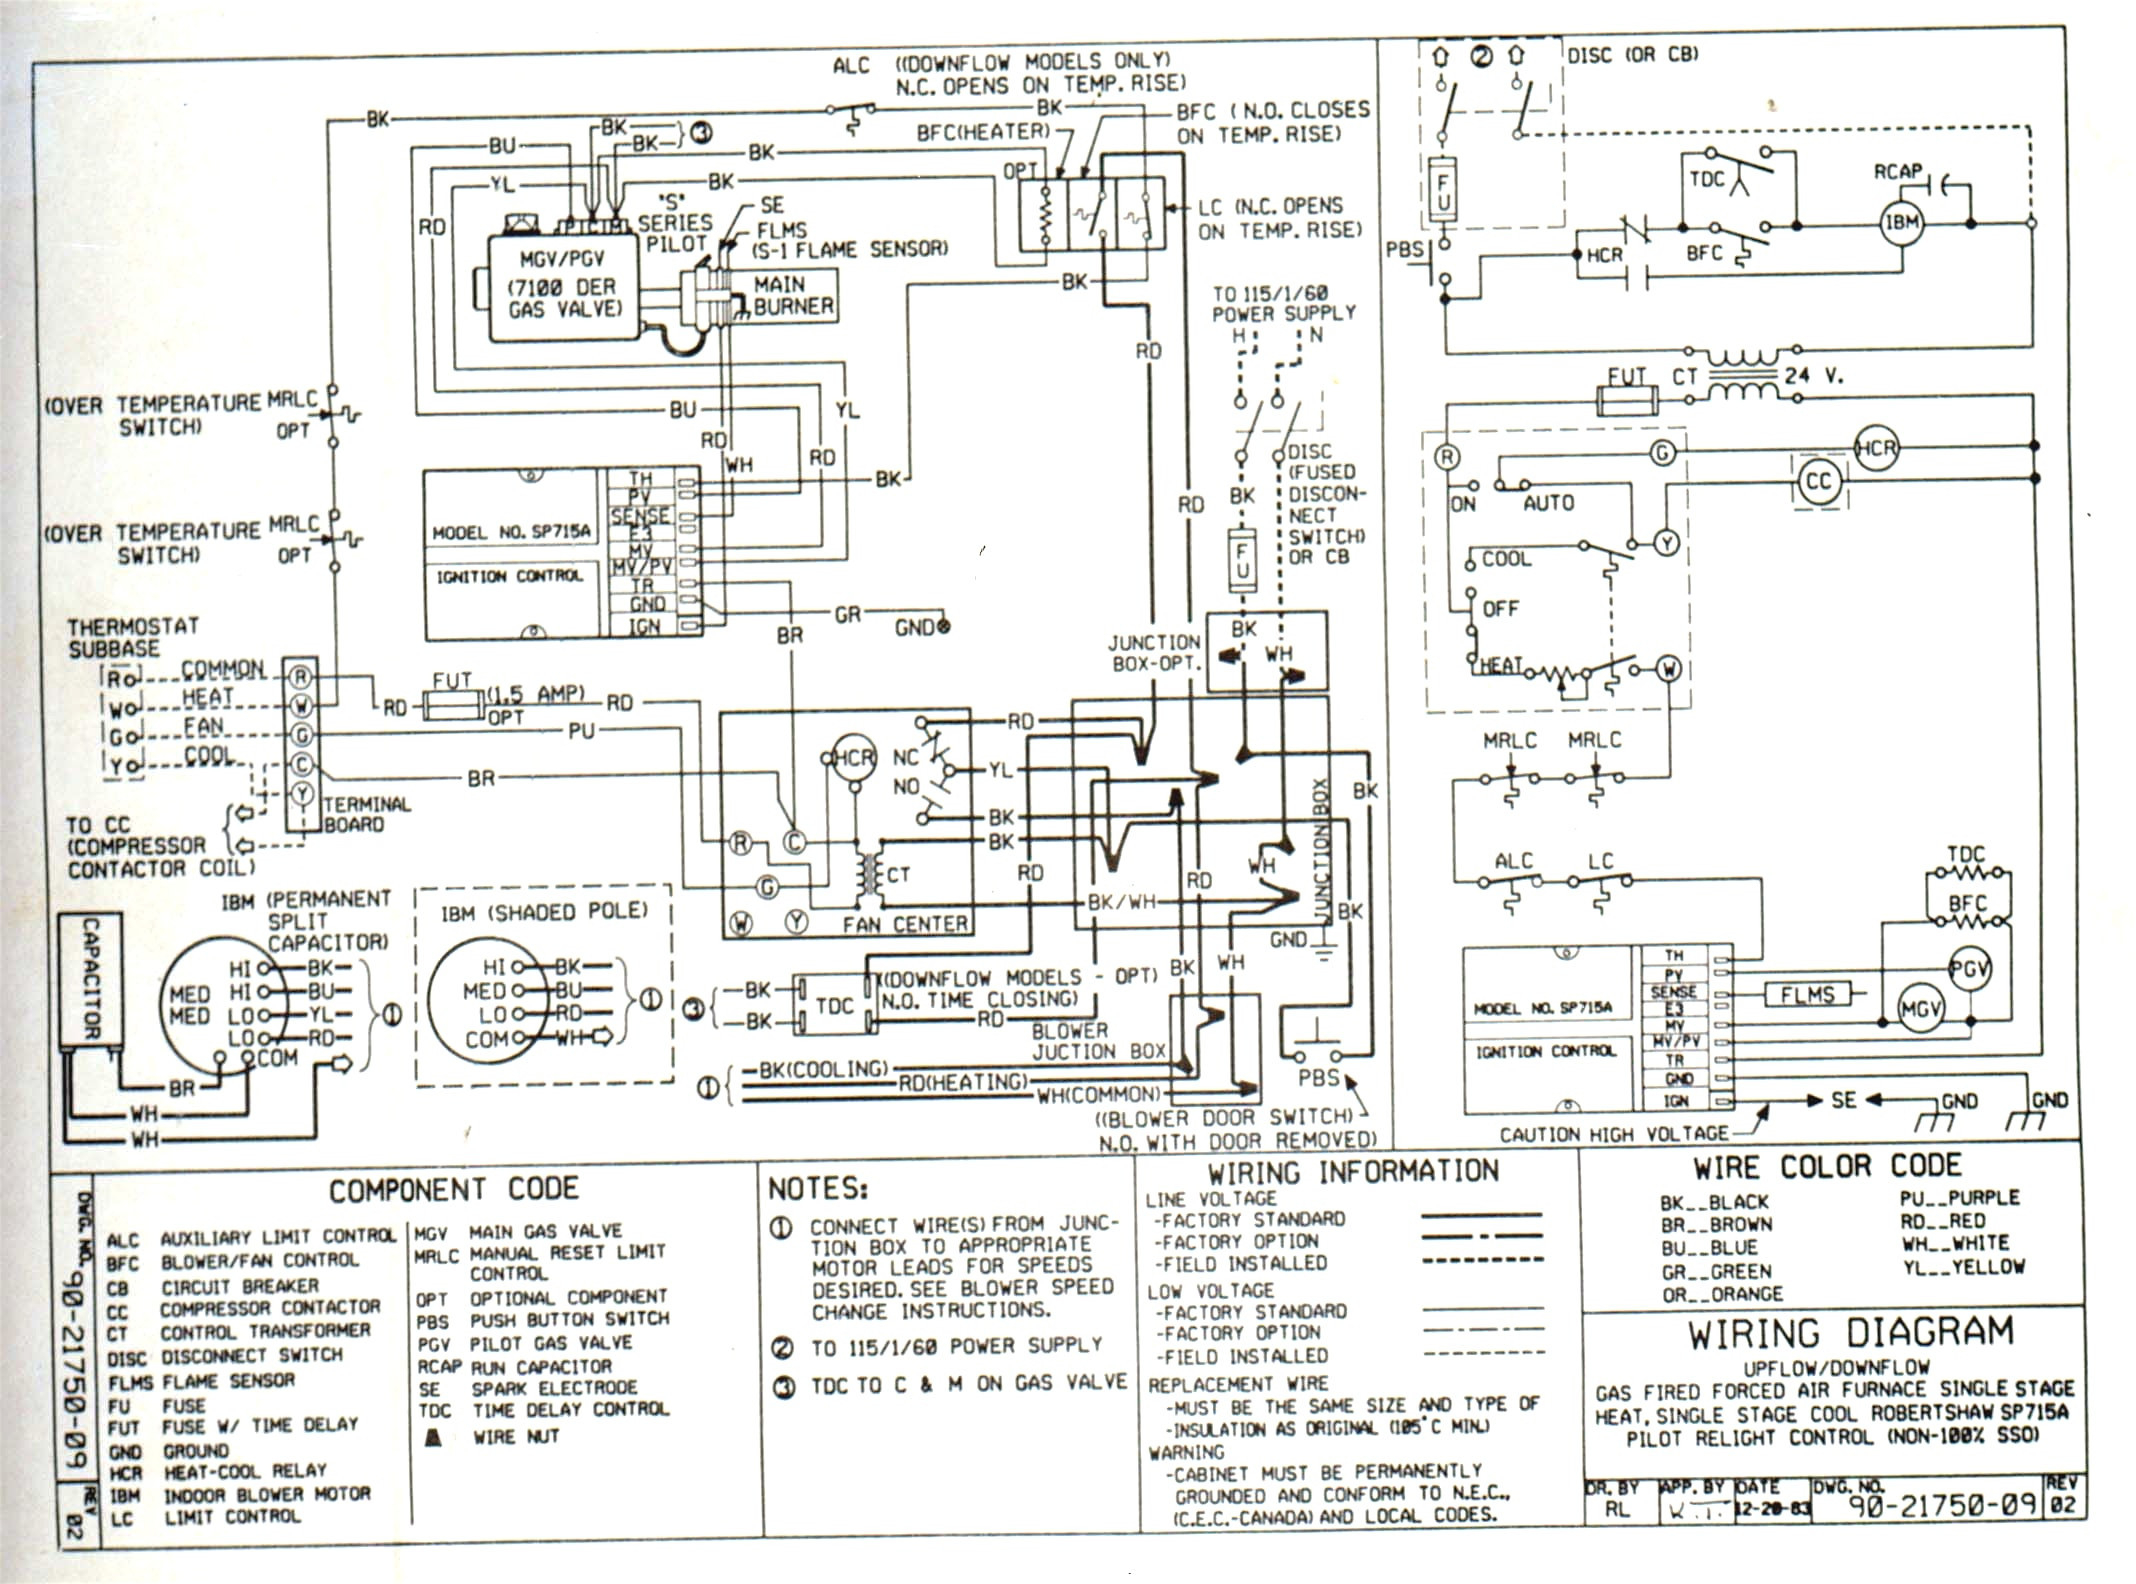 porsche 911 wiring diagram download 1971 porsche 911 wiring diagram get porsche 911 wiring diagram download #11